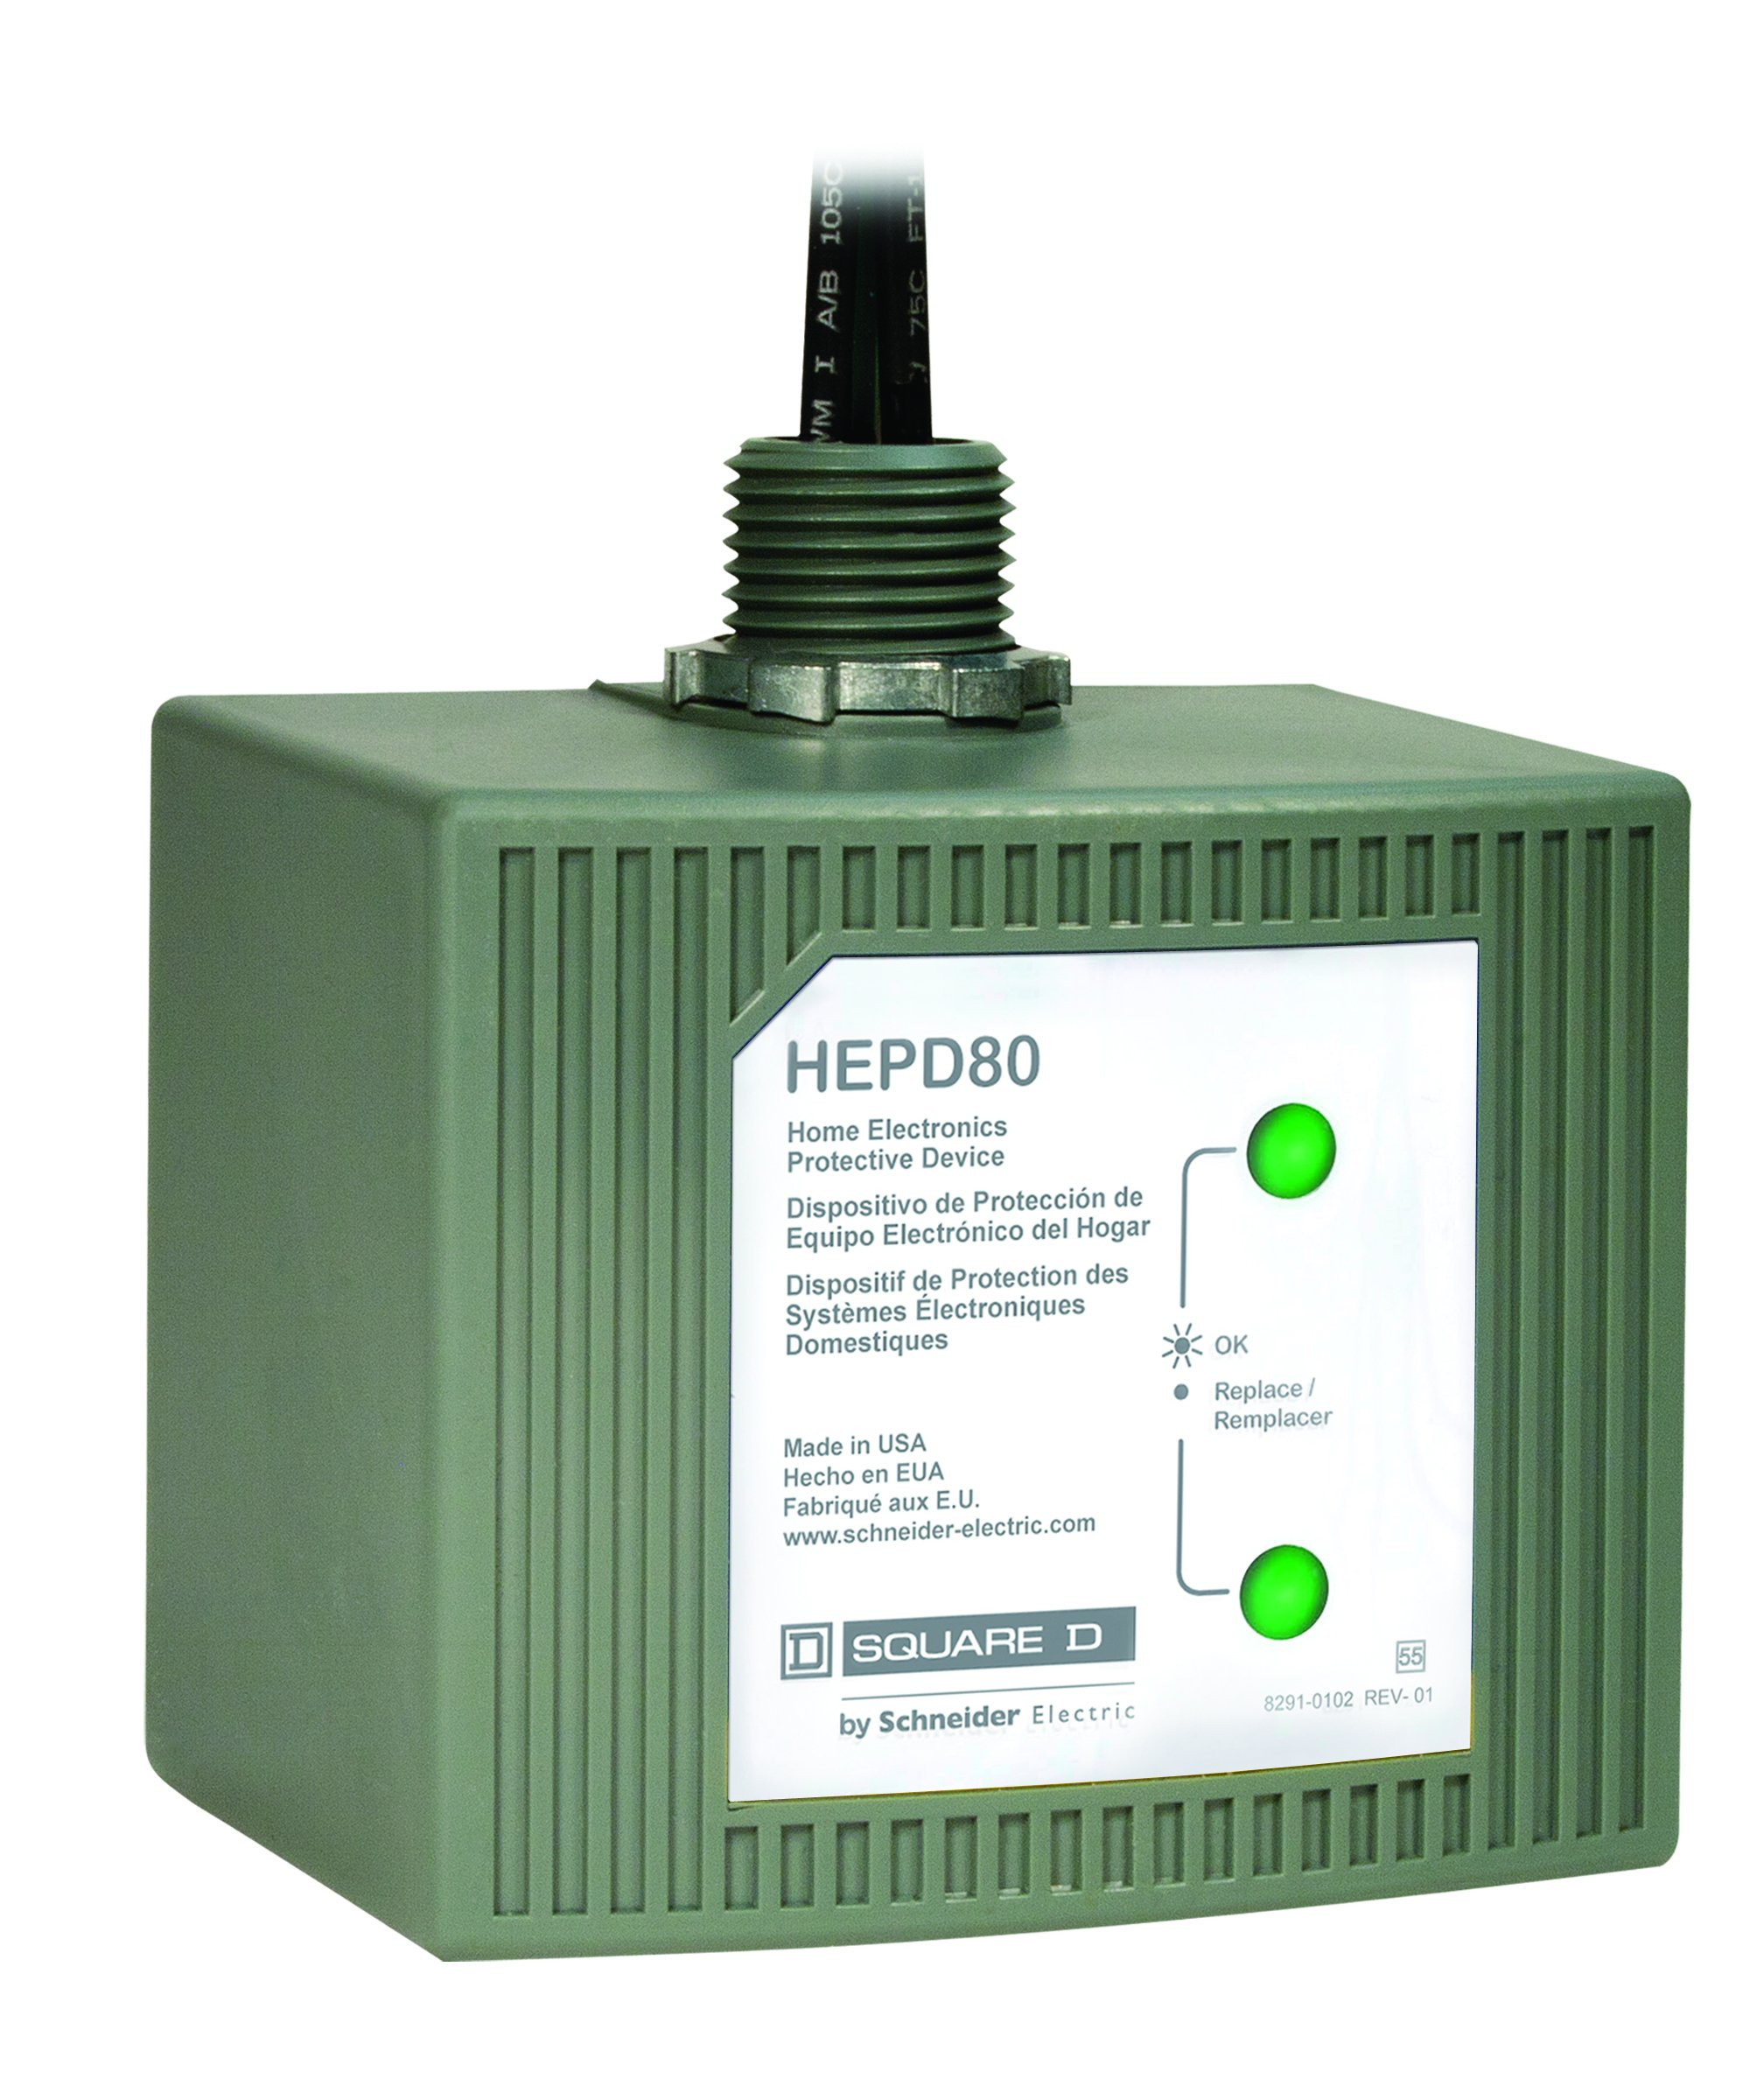 Square D by Schneider Electric HEPD80 Home Electronics Protective Device by Square D by Schneider Electric